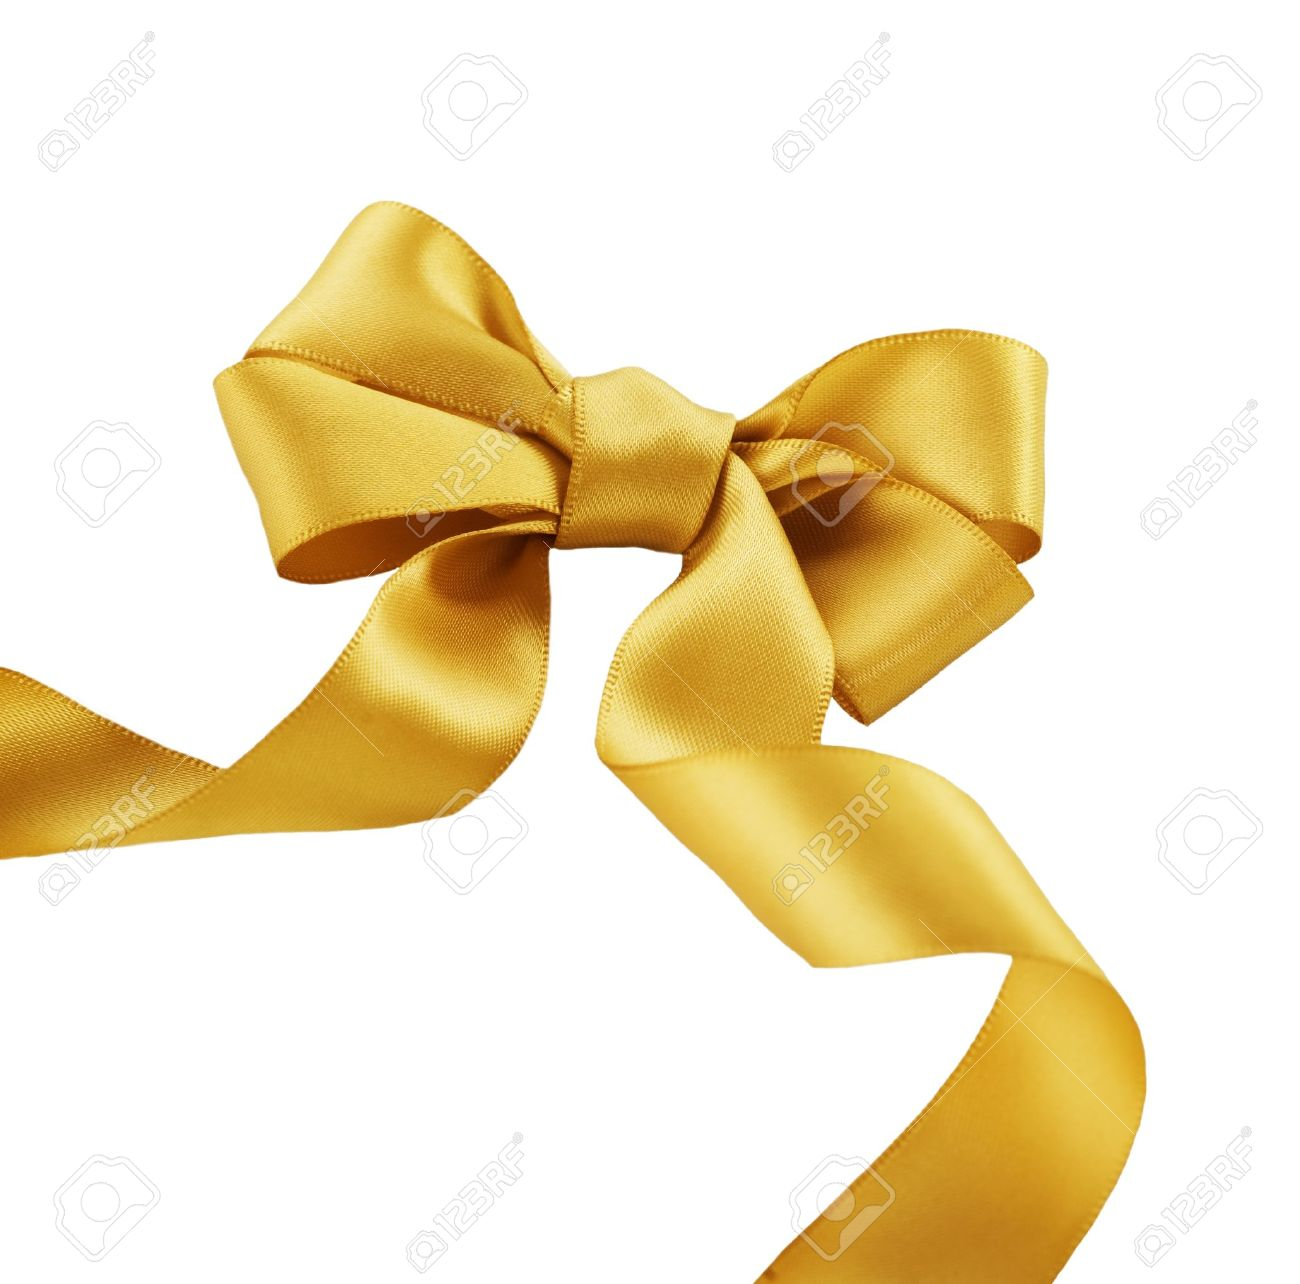 Gold Bow on a White Background Stock Photo - 11559859